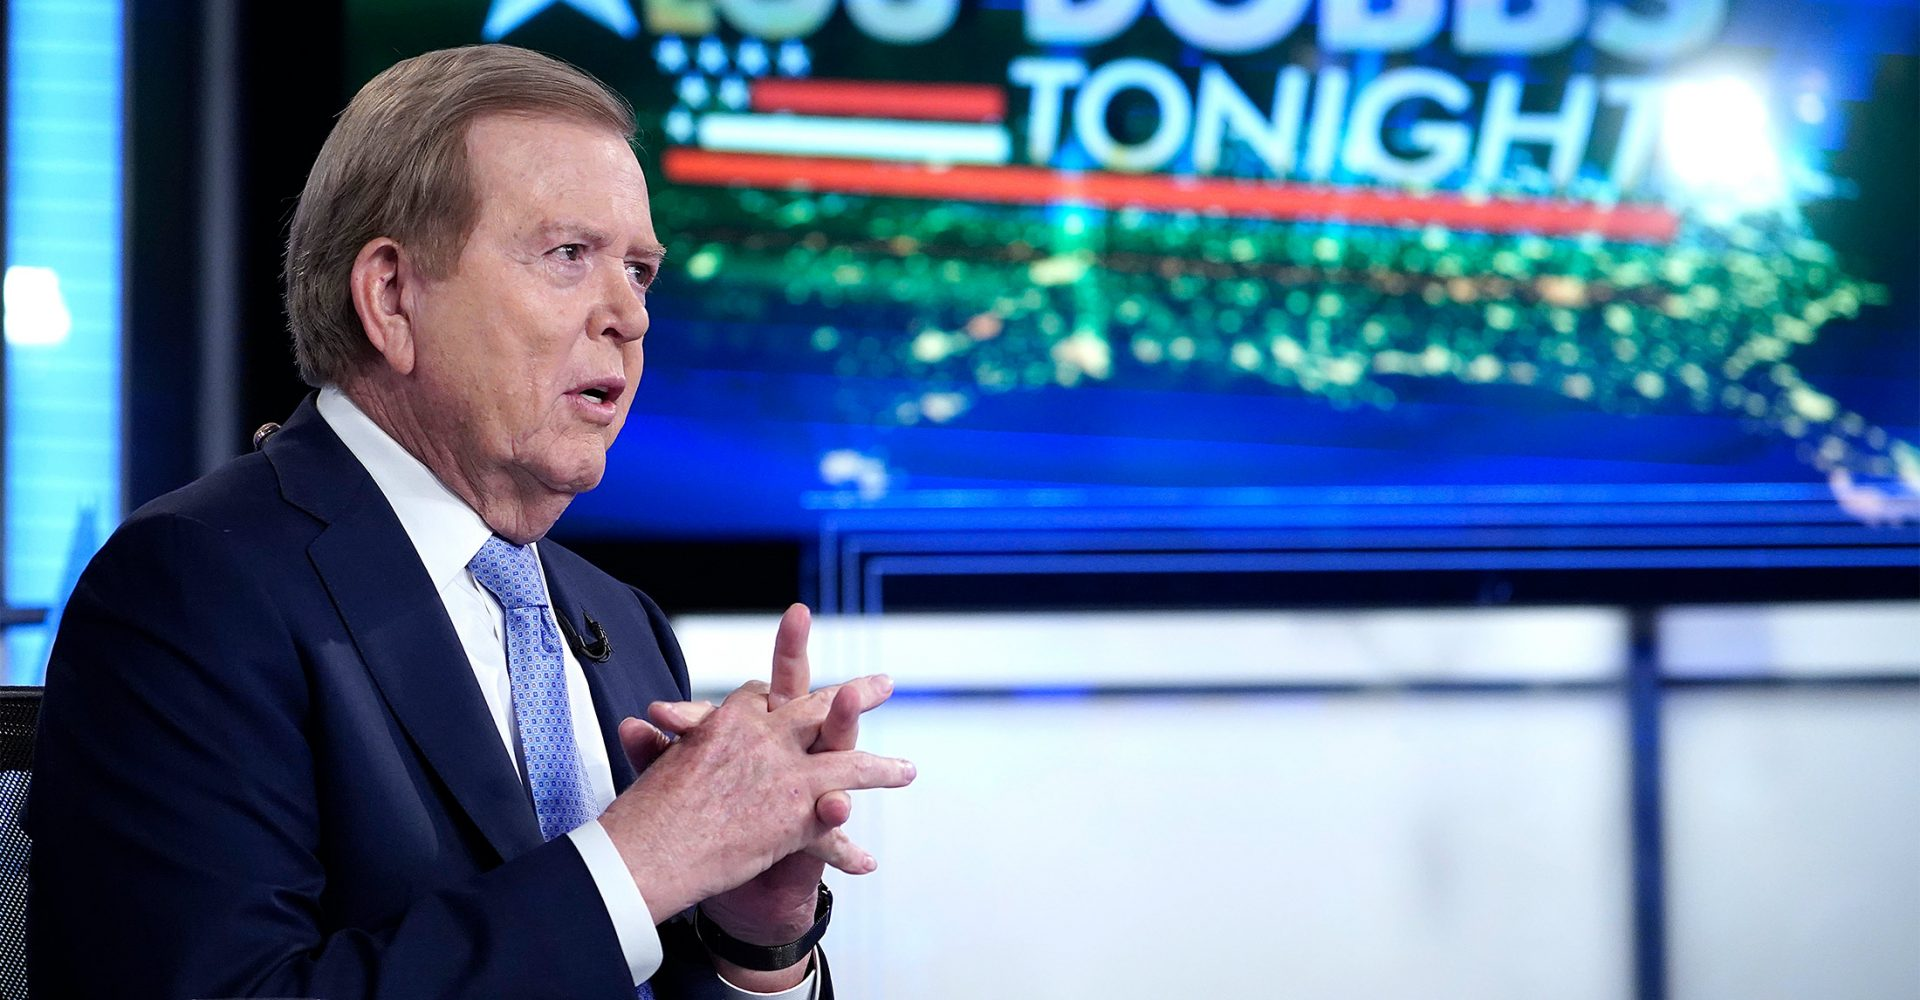 Lou Dobbs wearing a suit and tie